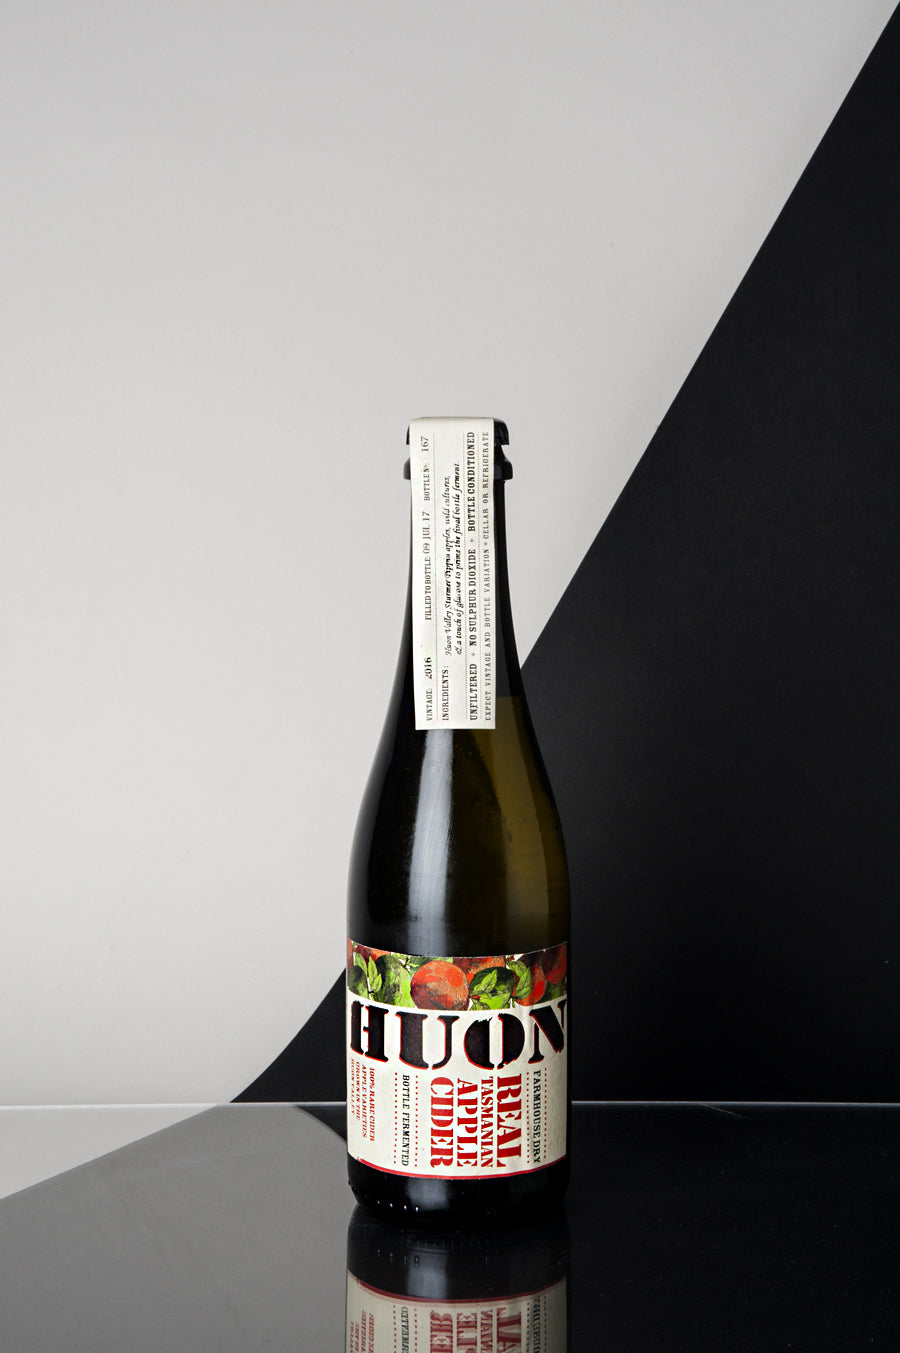 Two Metre Tall Huon Farmhouse Dry Apple Cider